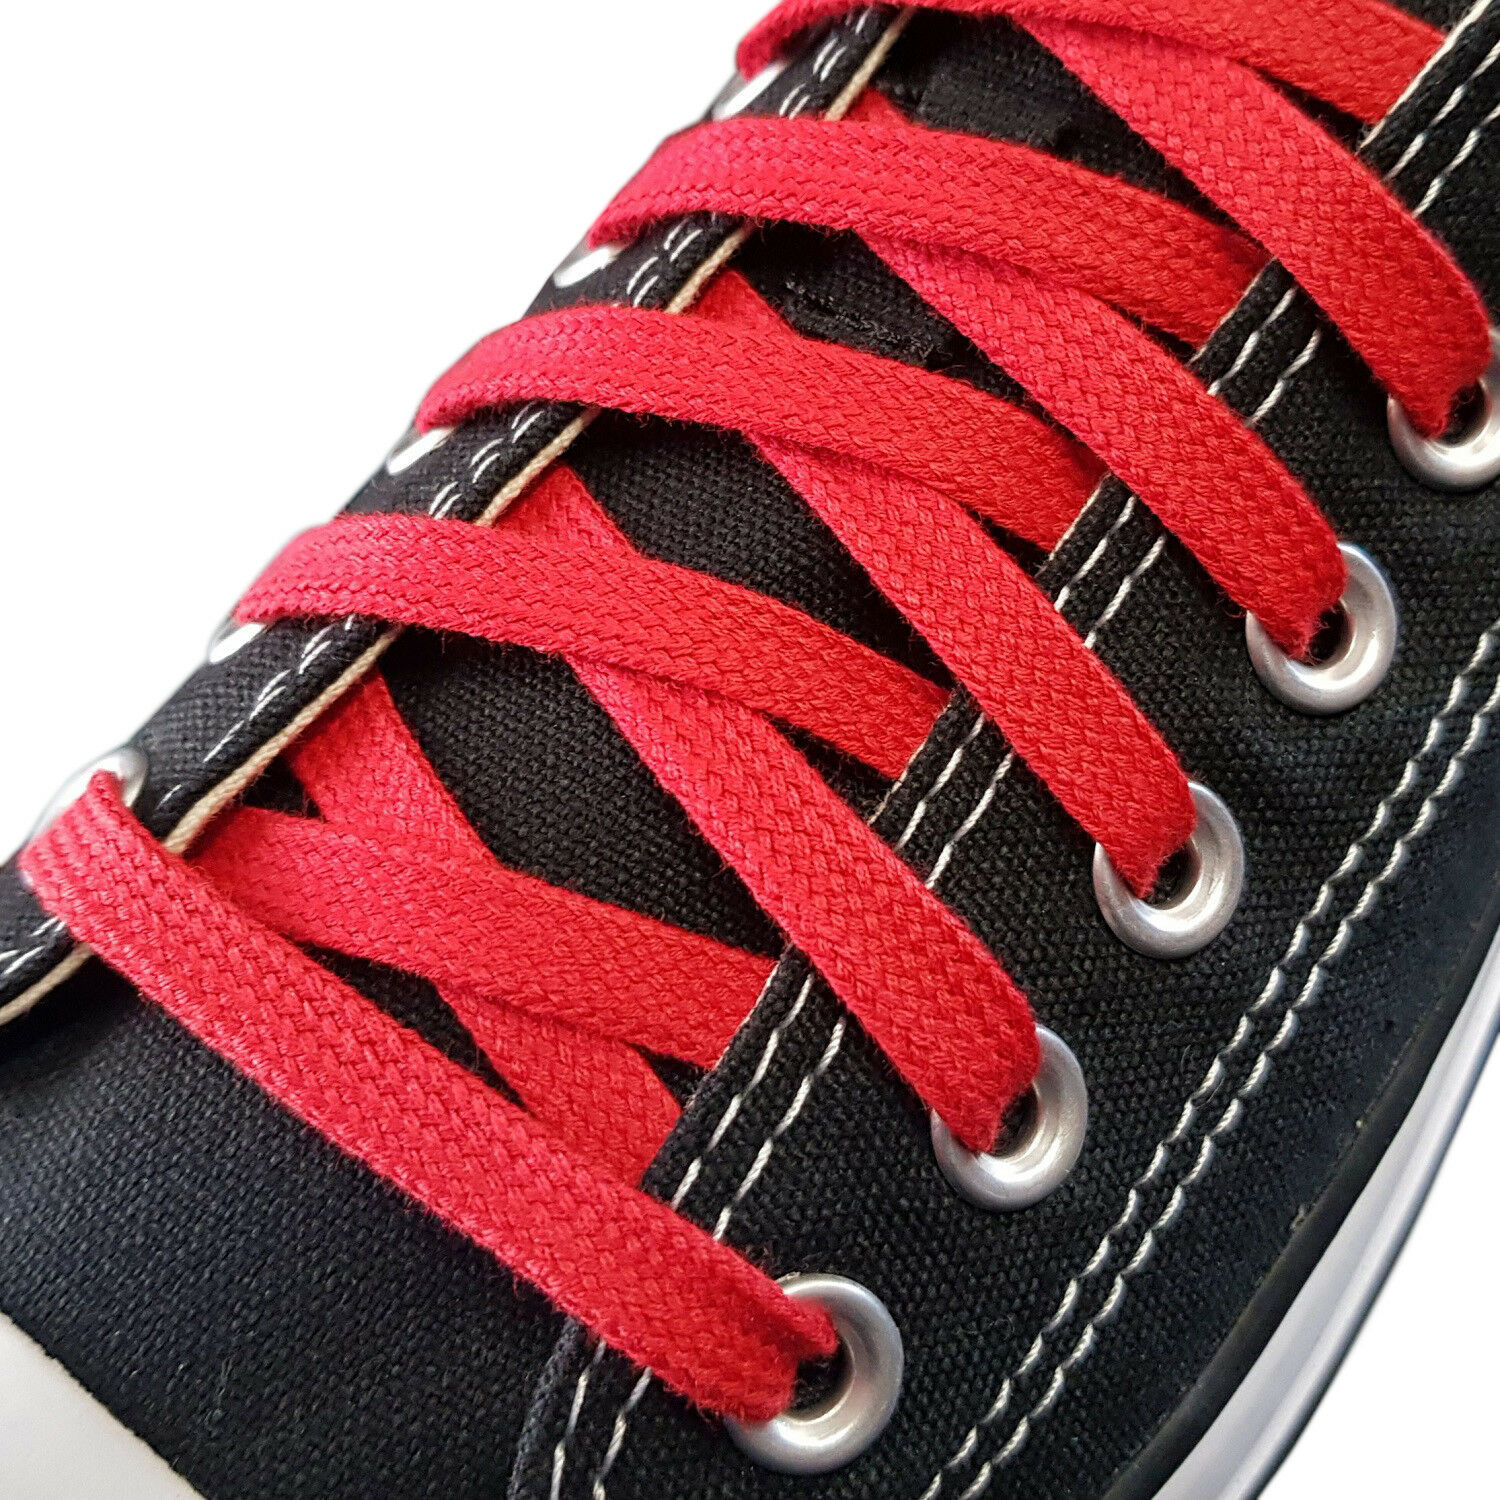 Flat Trainer Shoe Laces - ideal for